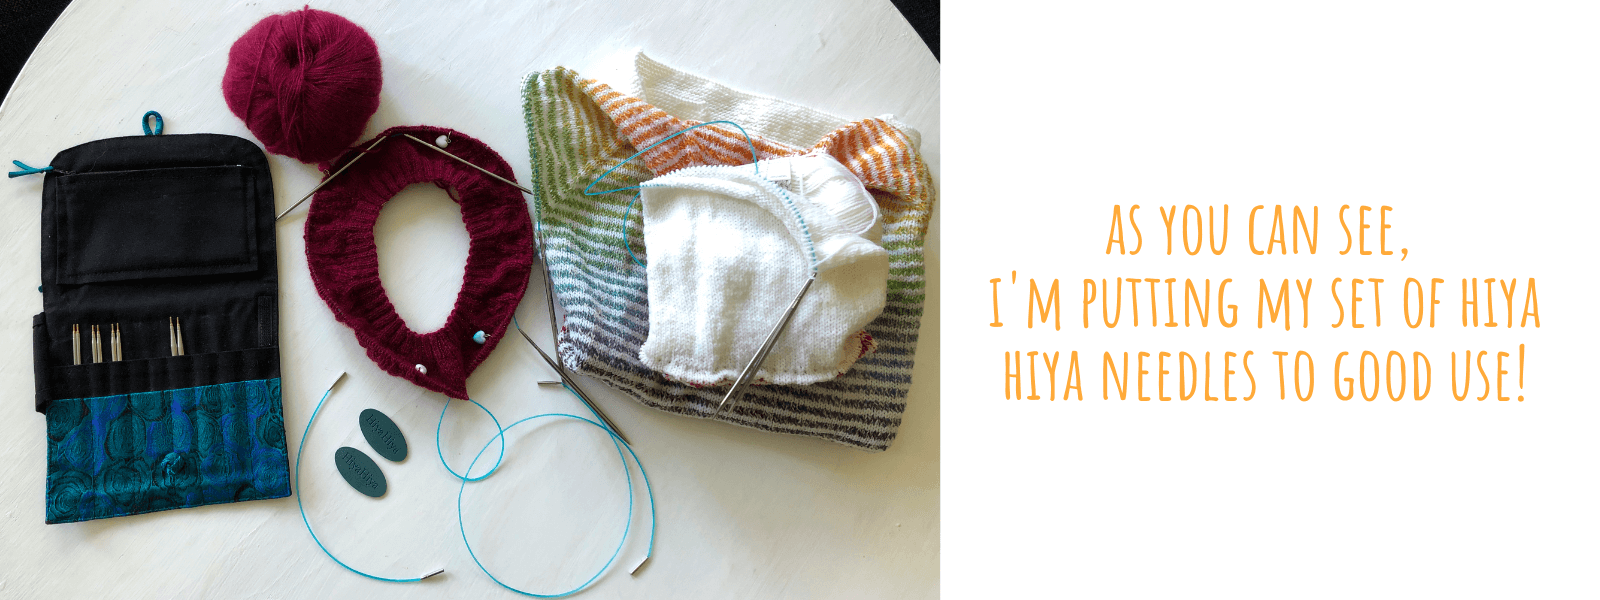 interchangeable knitting needles – this is my set of hiyahiya small sizes that I have used daily for almost a decade now